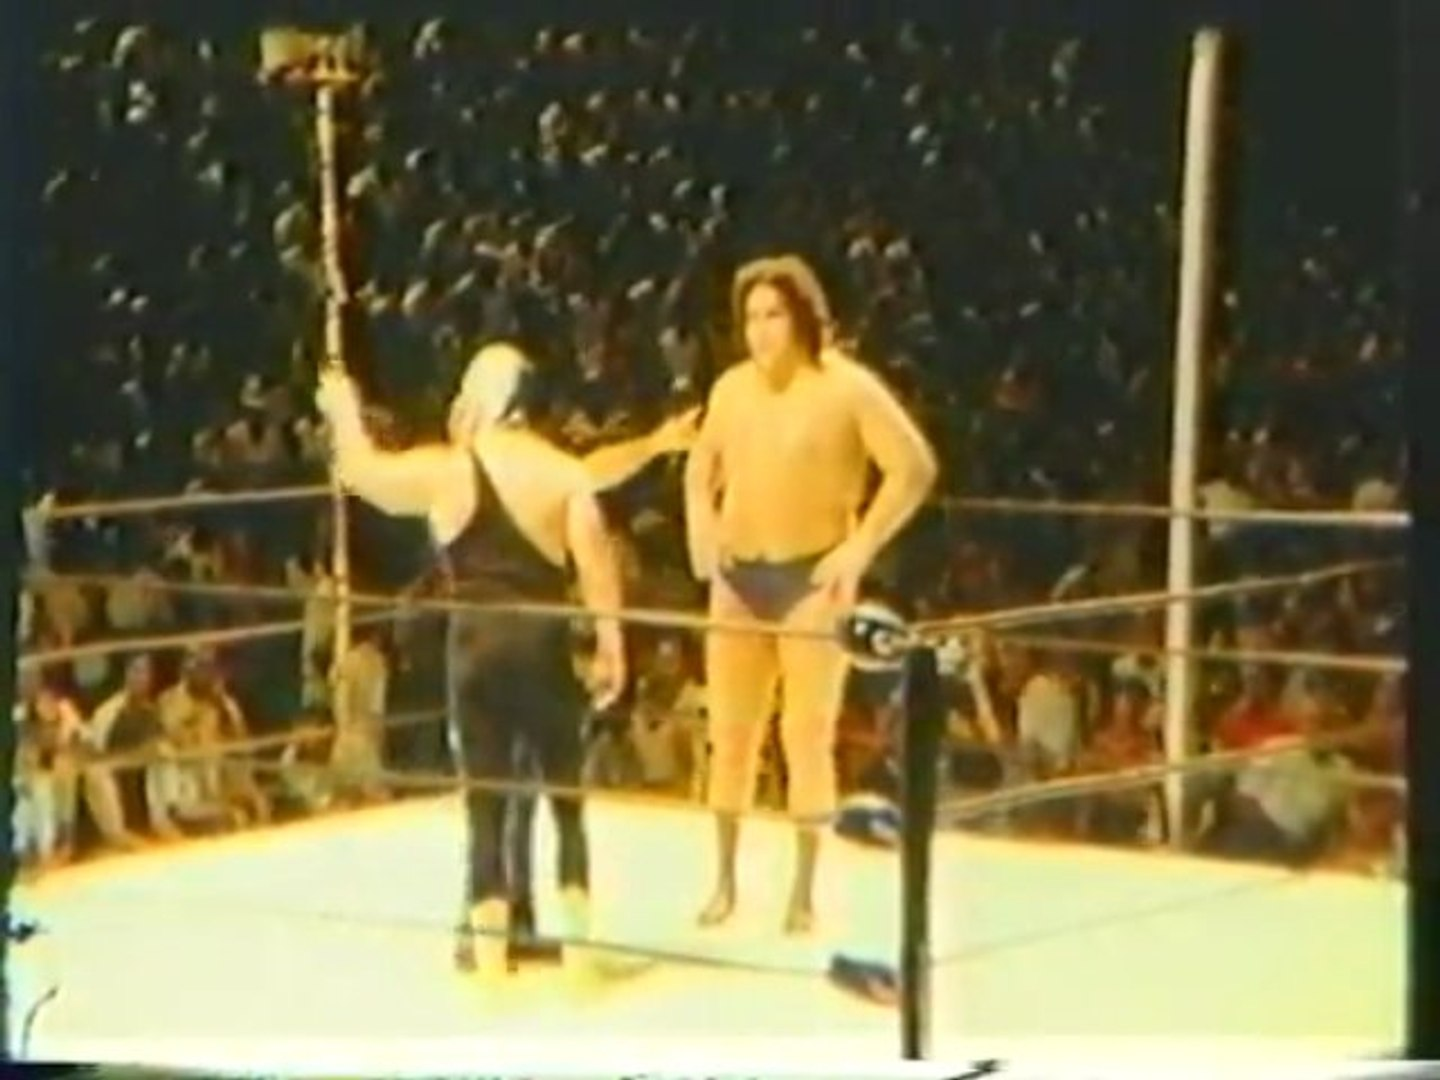 ANDRE THE GIANT VS THE MASKED SUPERSTAR LATE '70s MID-ATLANTIC HOUSE SHOW FOOTAGE